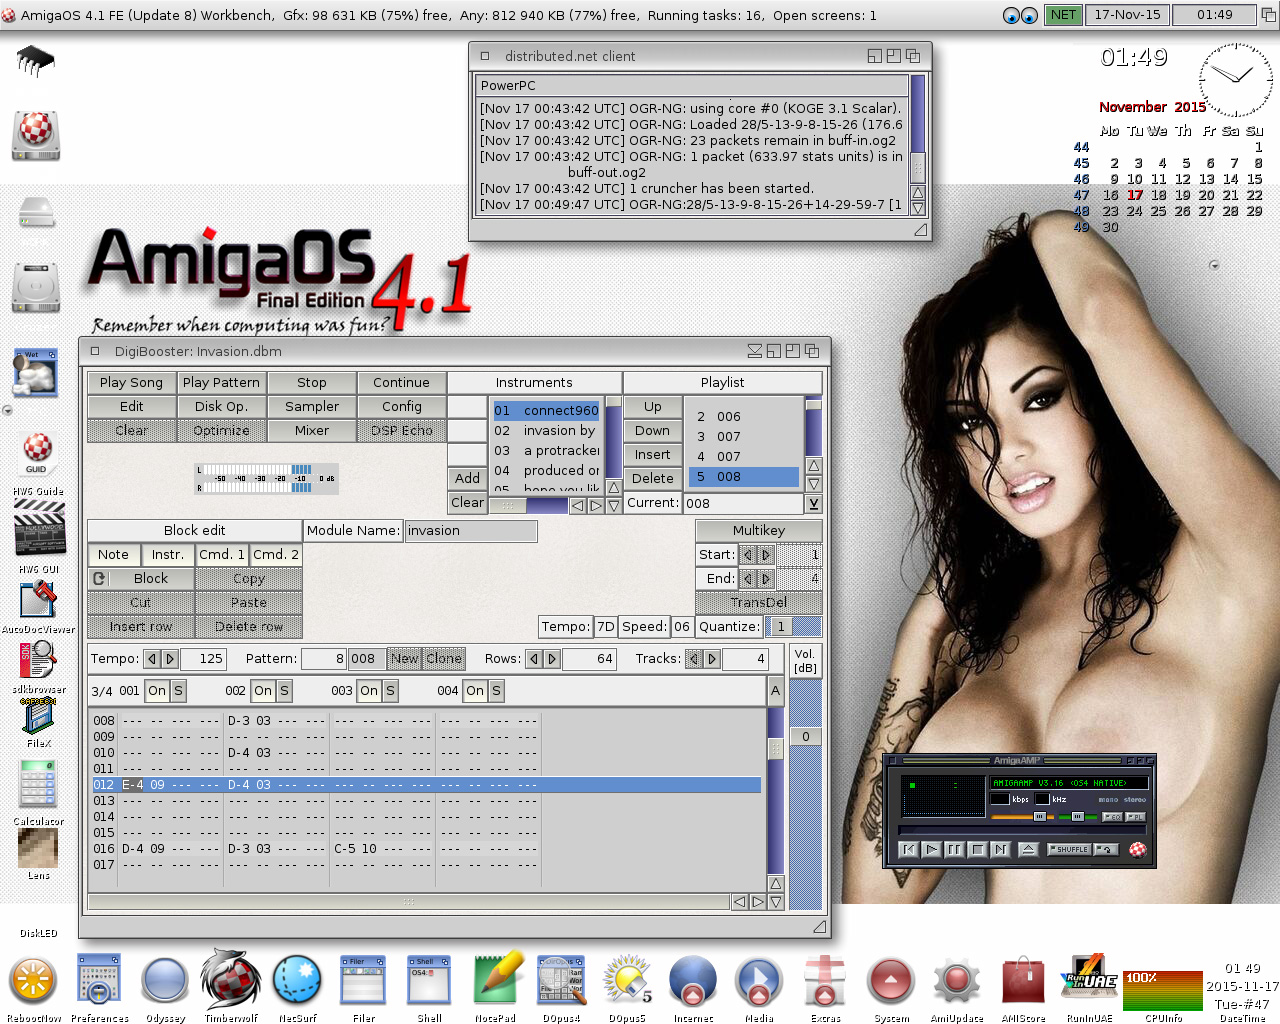 AmigaOS 4.1 FE-DigiBooster playing